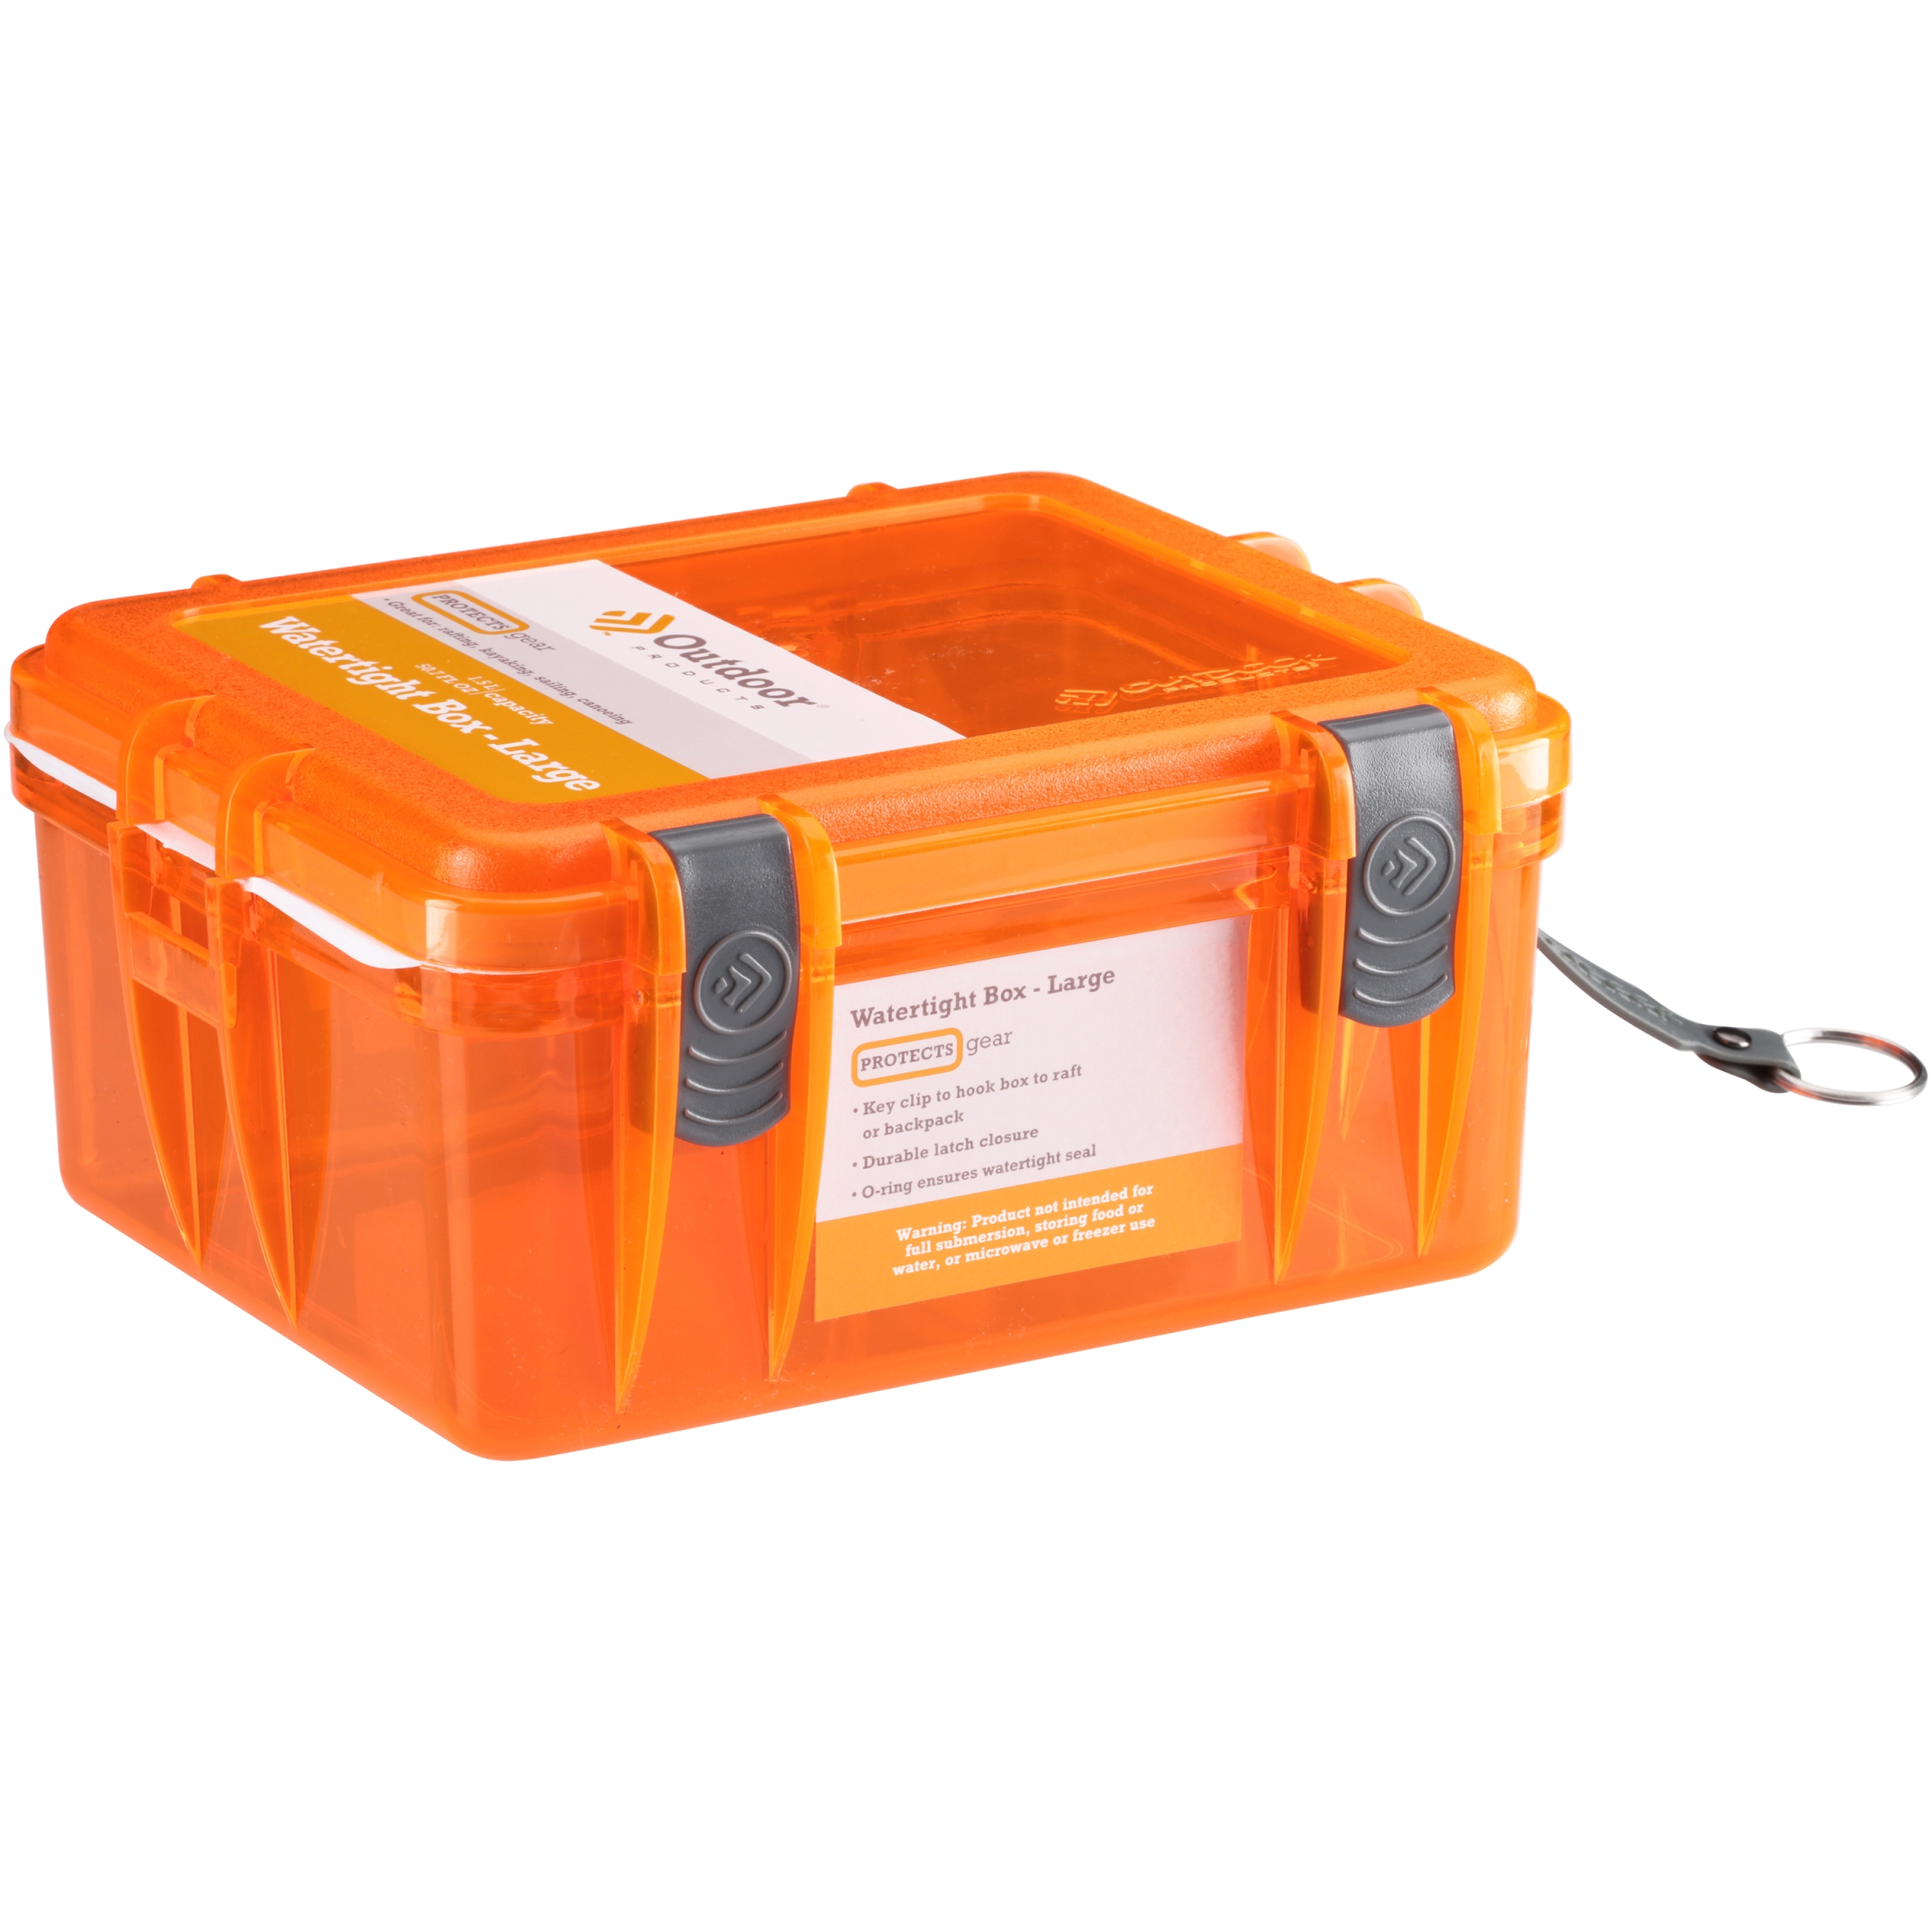 Watertight Fuse Box Cover Clip Trusted Wiring Diagrams Tpms On 2008 Kia Sportage Outdoor Products Large Orange Walmart Com Portable